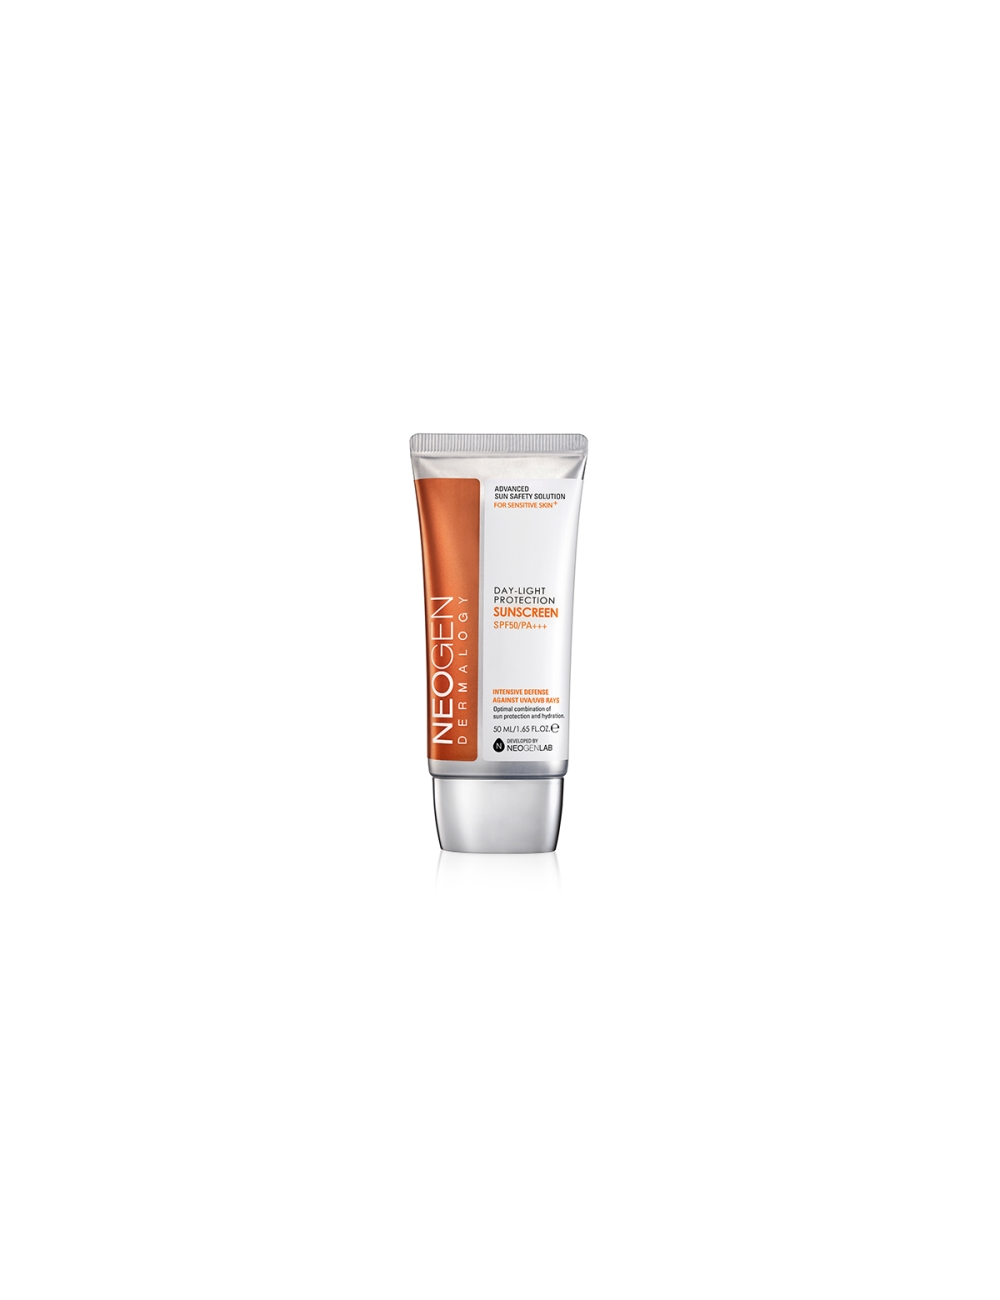 Day light protection sunscreen